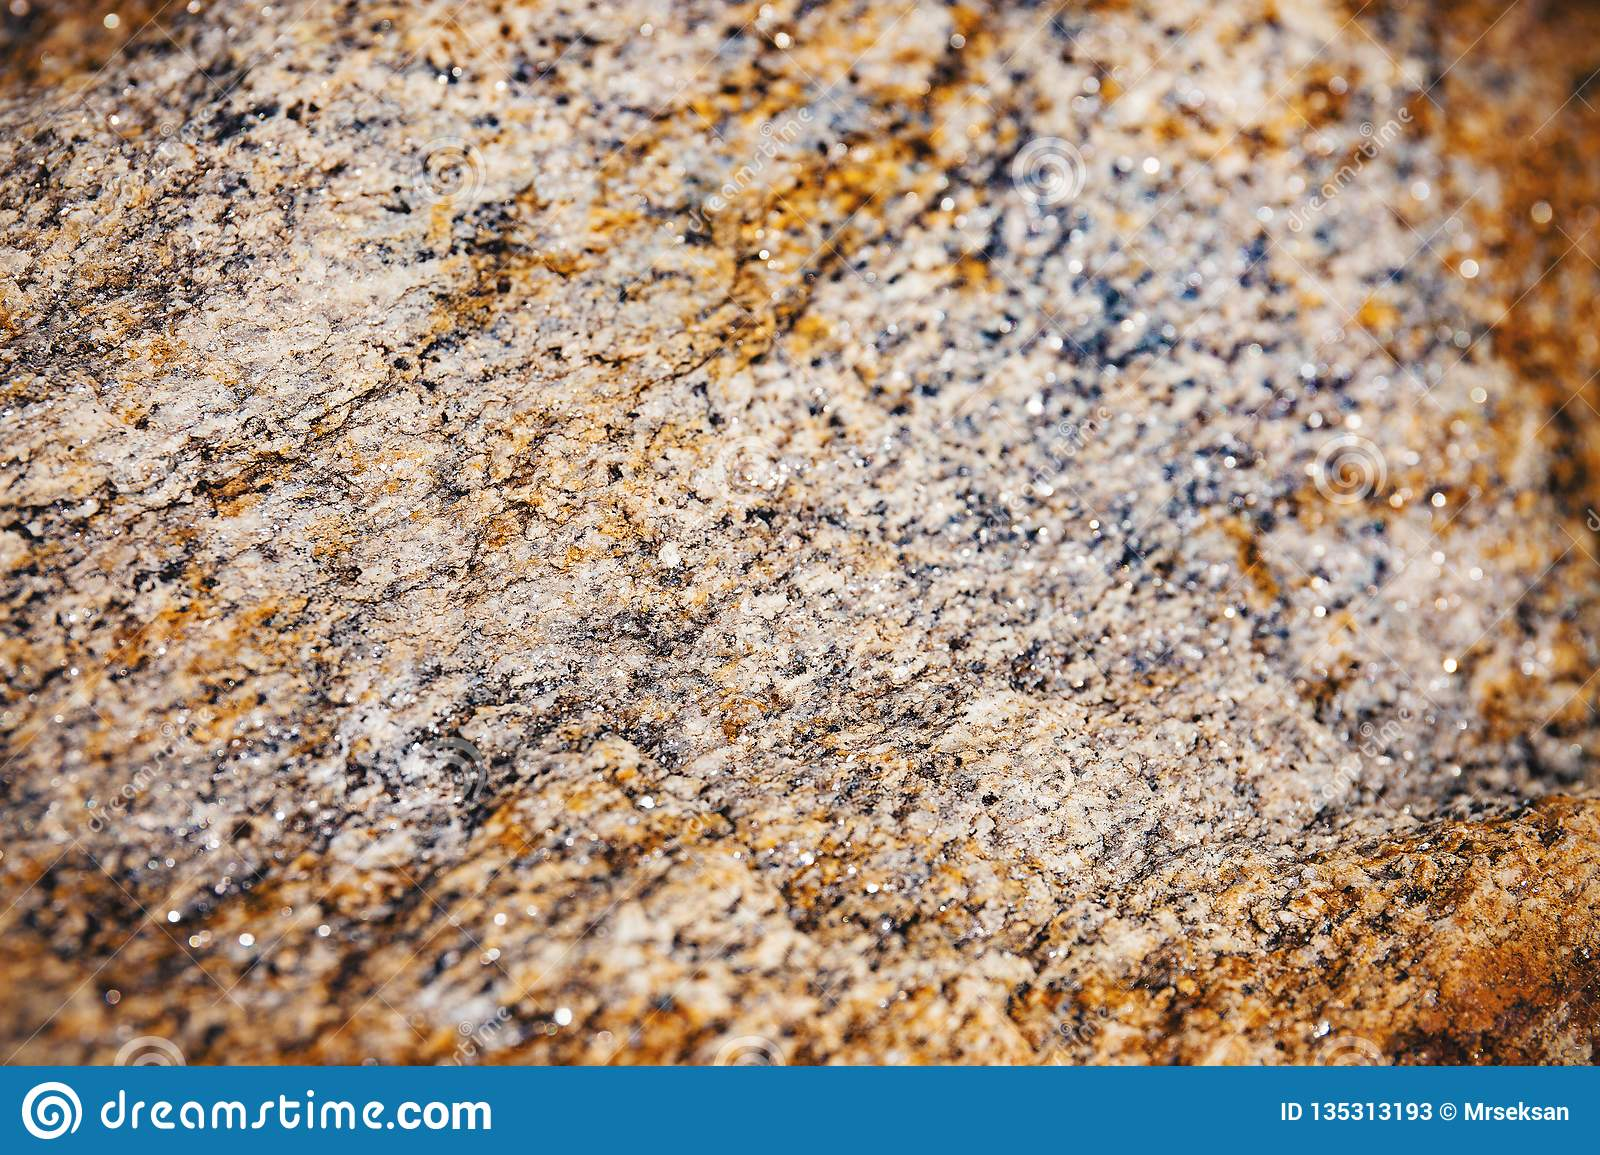 Selected focus of rusty and dusty of rough stone surface texture